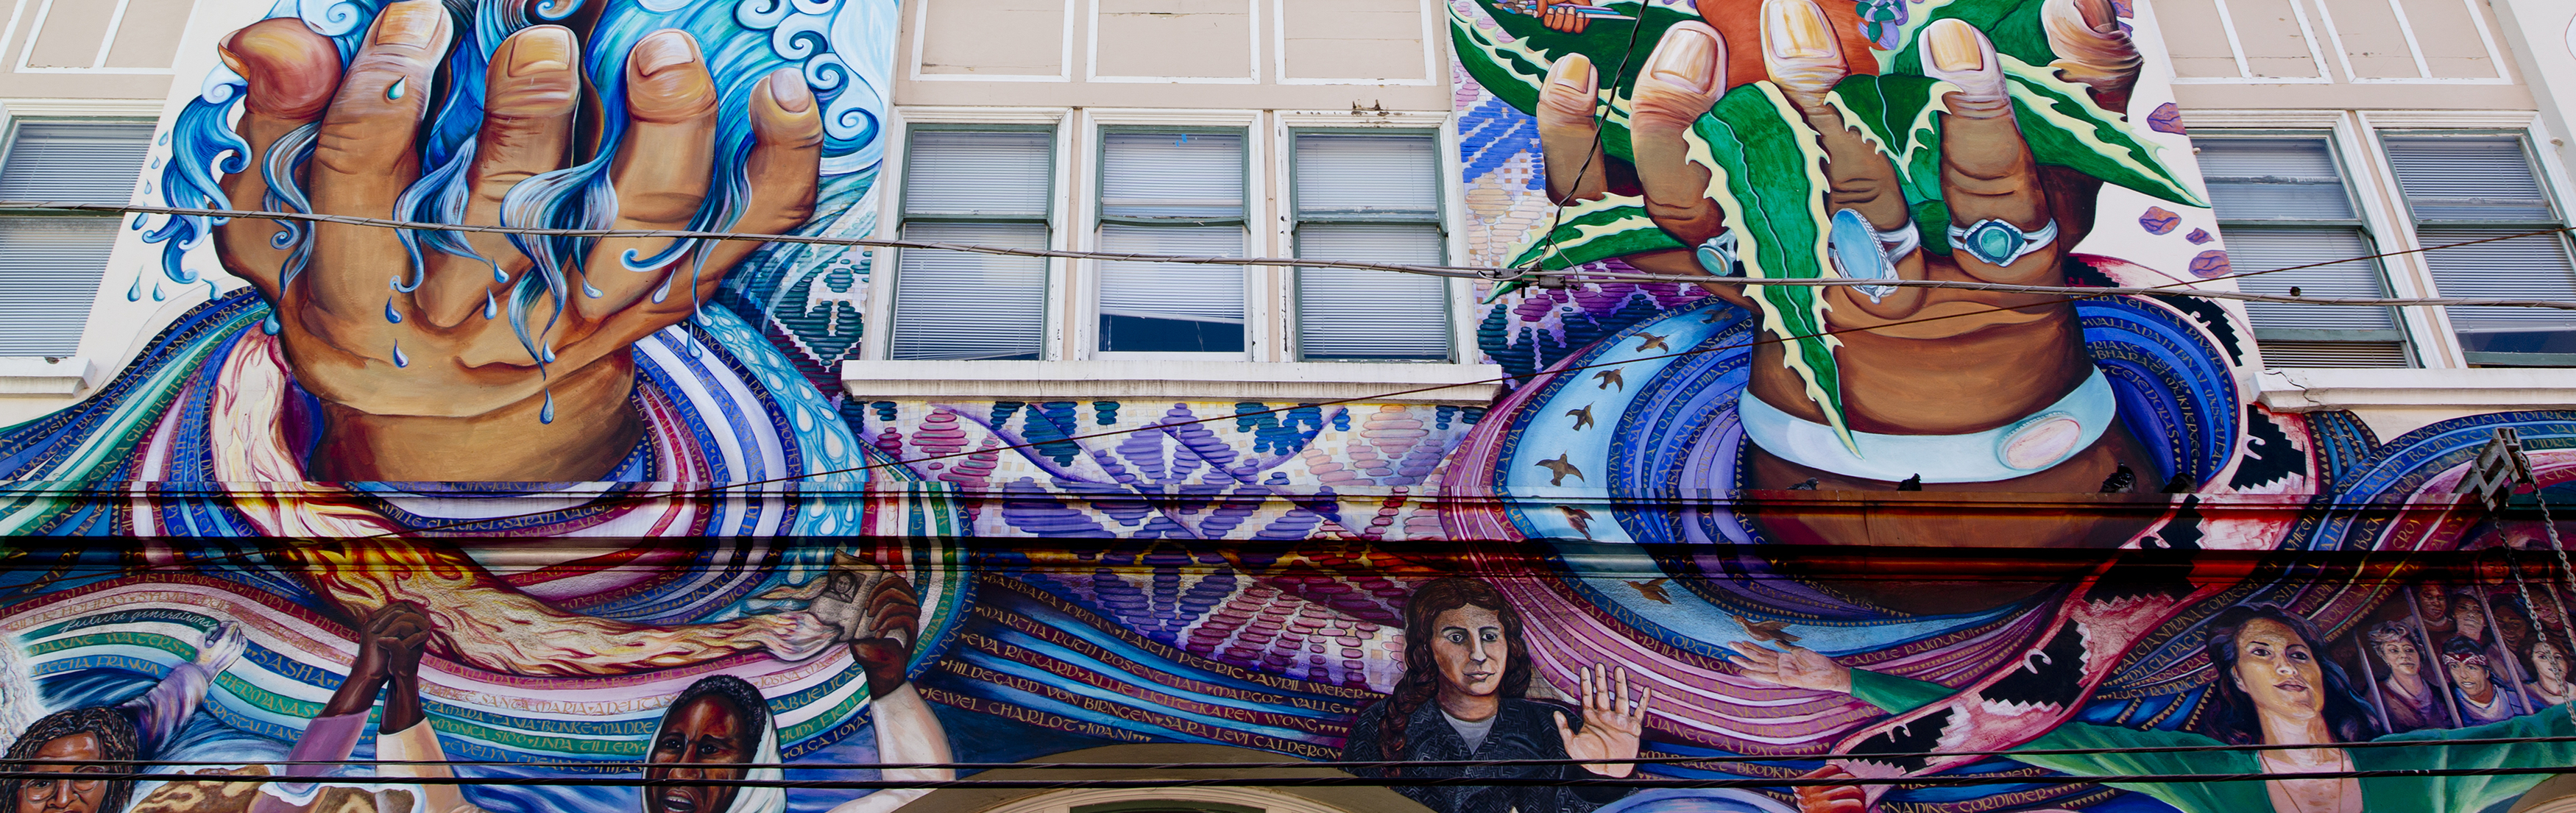 Outdoor mural in San Francisco depicting two hands and faces of Latina women